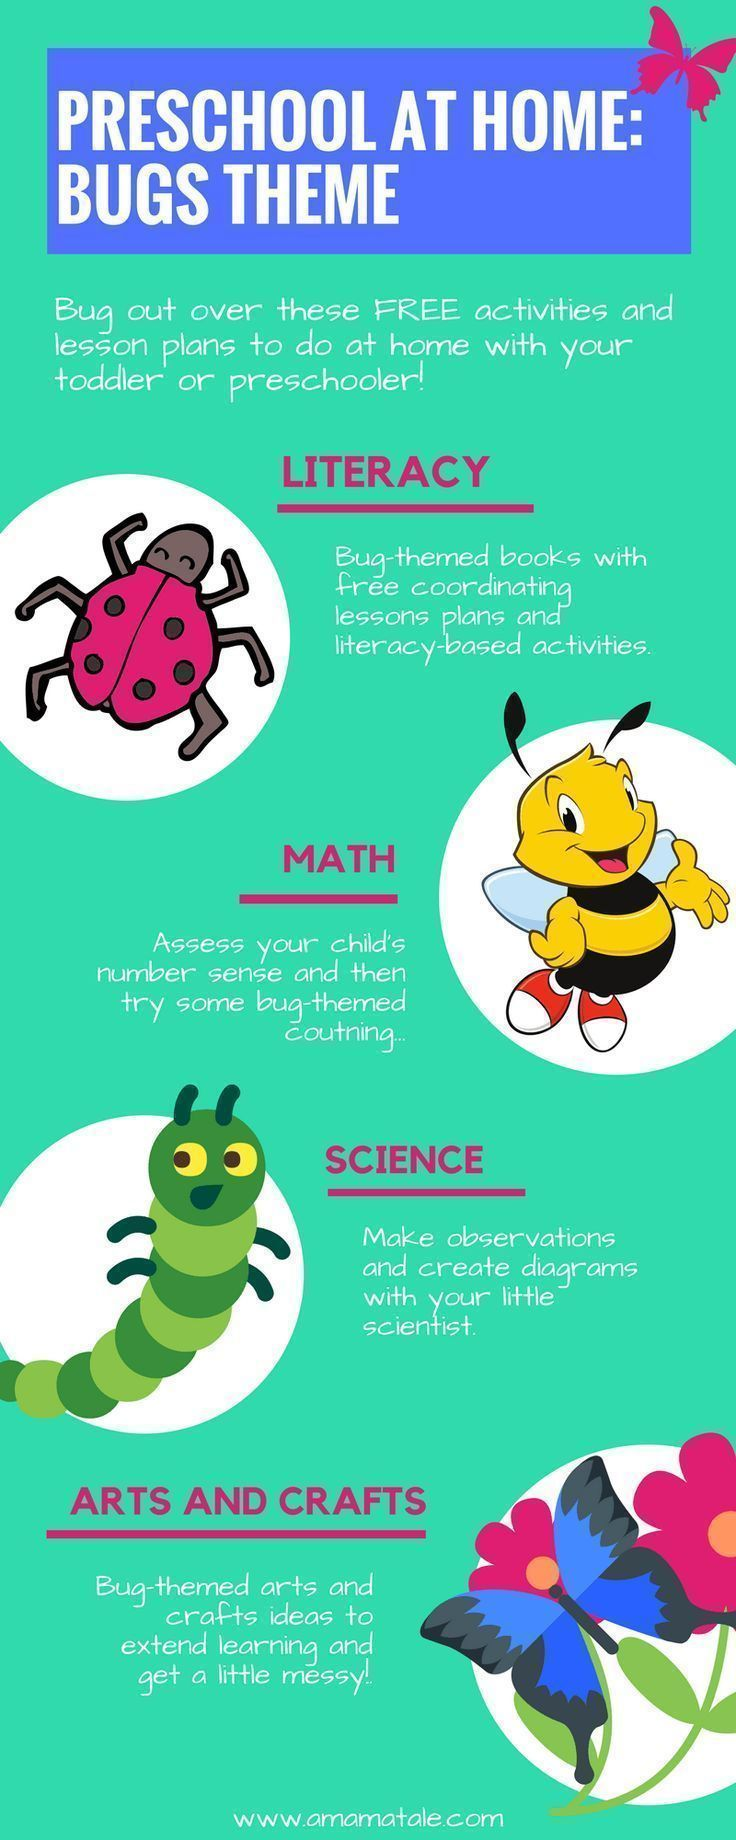 Bugs Theme Preschool at Home | Preschool | Home School | Preschool at Home | Preschool Activities | Preschoolers | Toddlers | Early Literacy | Preschool Math | Preschool Math | Looking for early learning strategies to do with your preschooler or toddler at home? Click to get FREE lessons and activities on www.amamatale.com #homeschoolingfortoddlerslessonplans